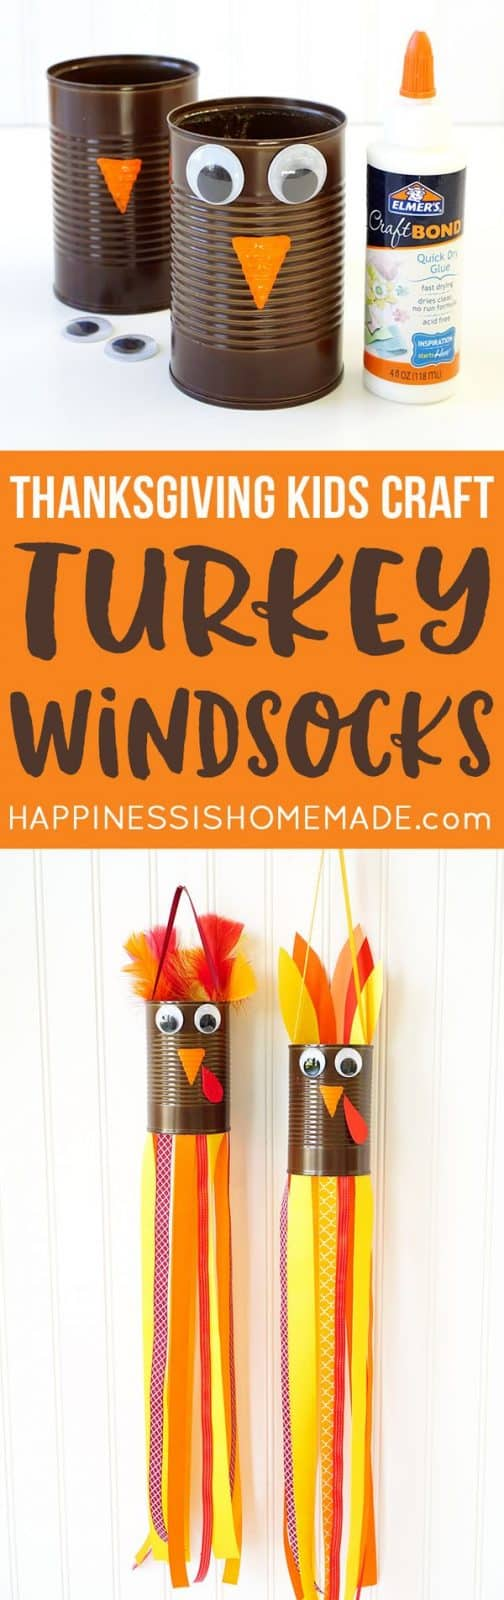 Turkey Windsocks for Preschoolers to Make